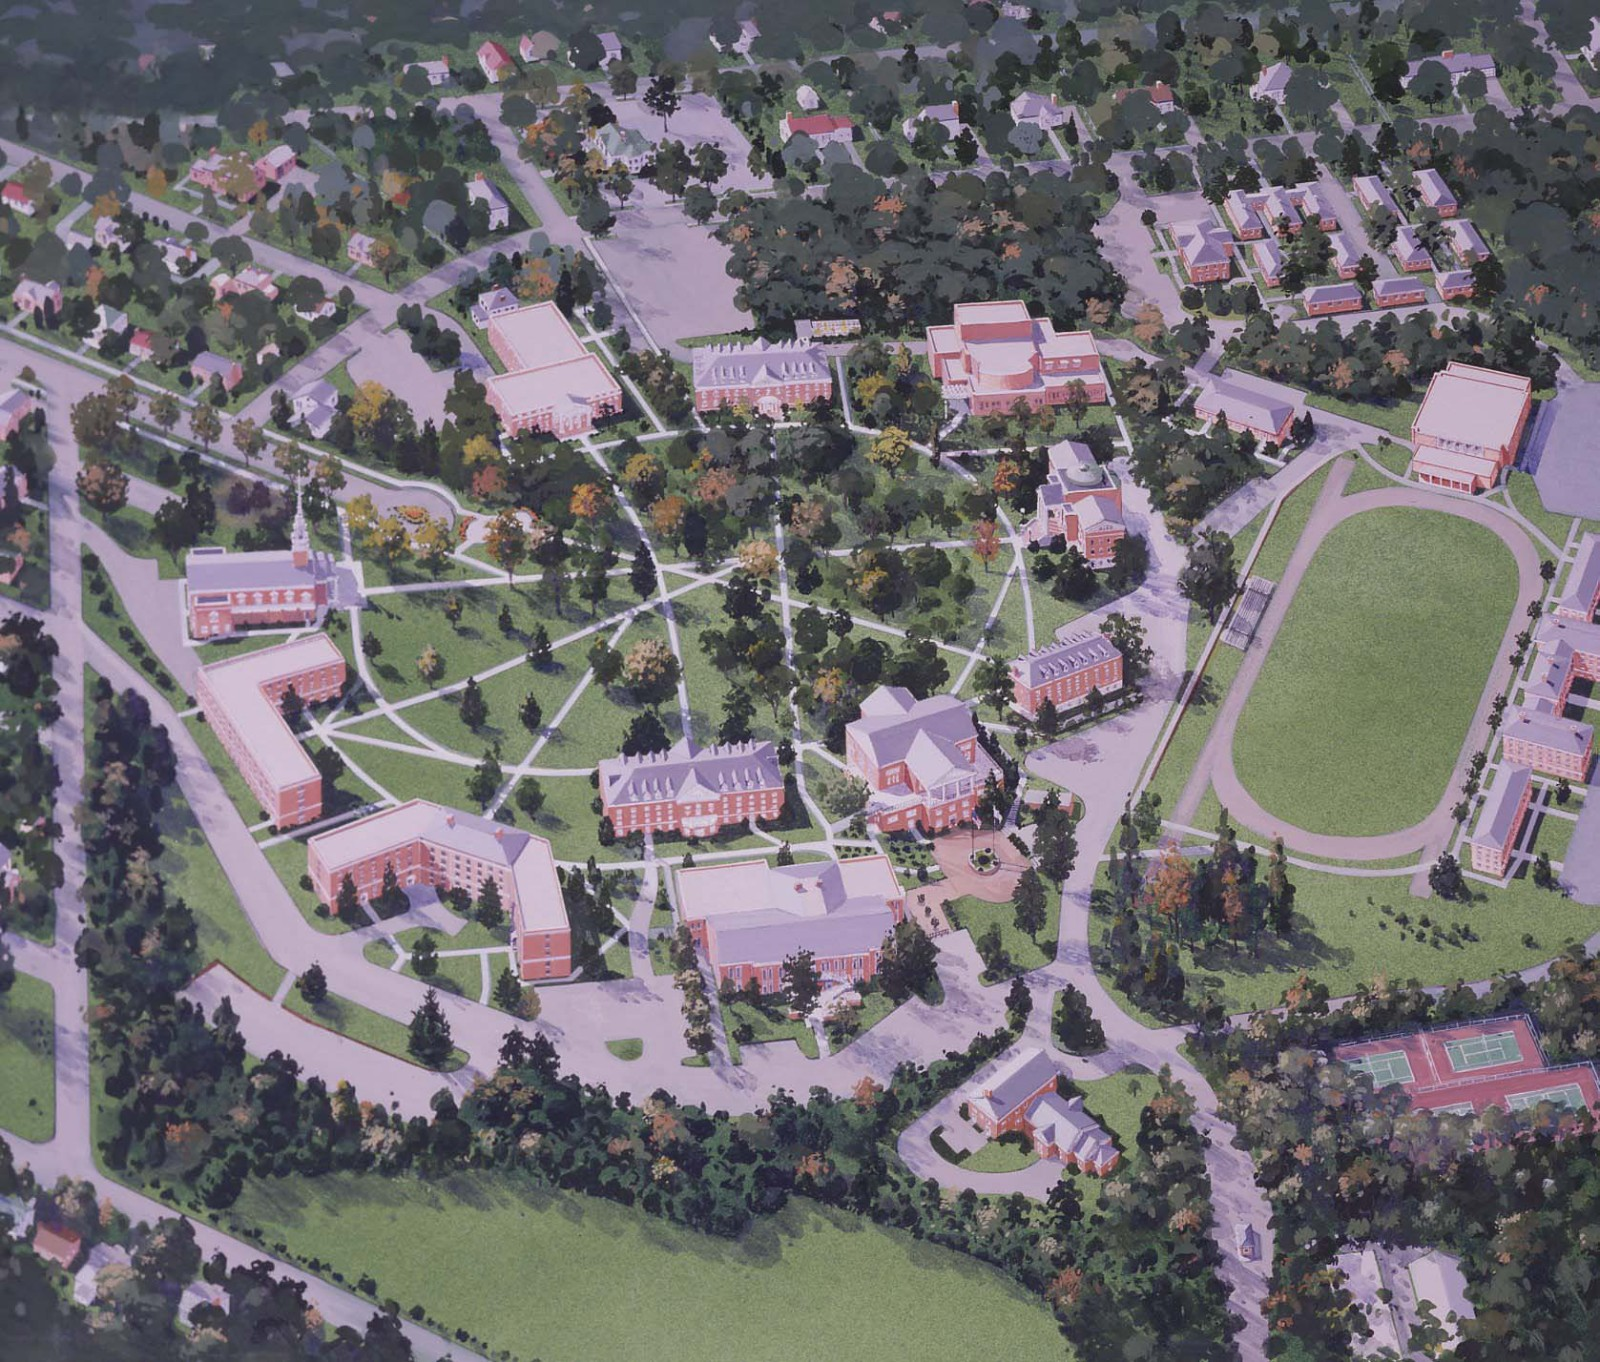 Montco Campus Map.Campus Map Aerial View Rendering Lynchburg College Montco Today